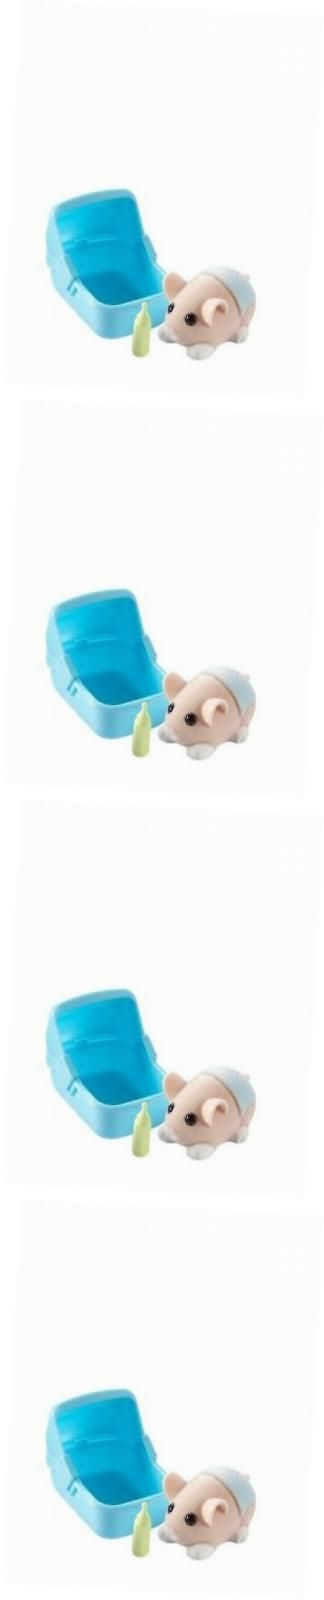 Zhu Zhu Pets 171529: Zhu Zhu Hamster Babies - Peanut -> BUY IT NOW ONLY: $33.35 on eBay!